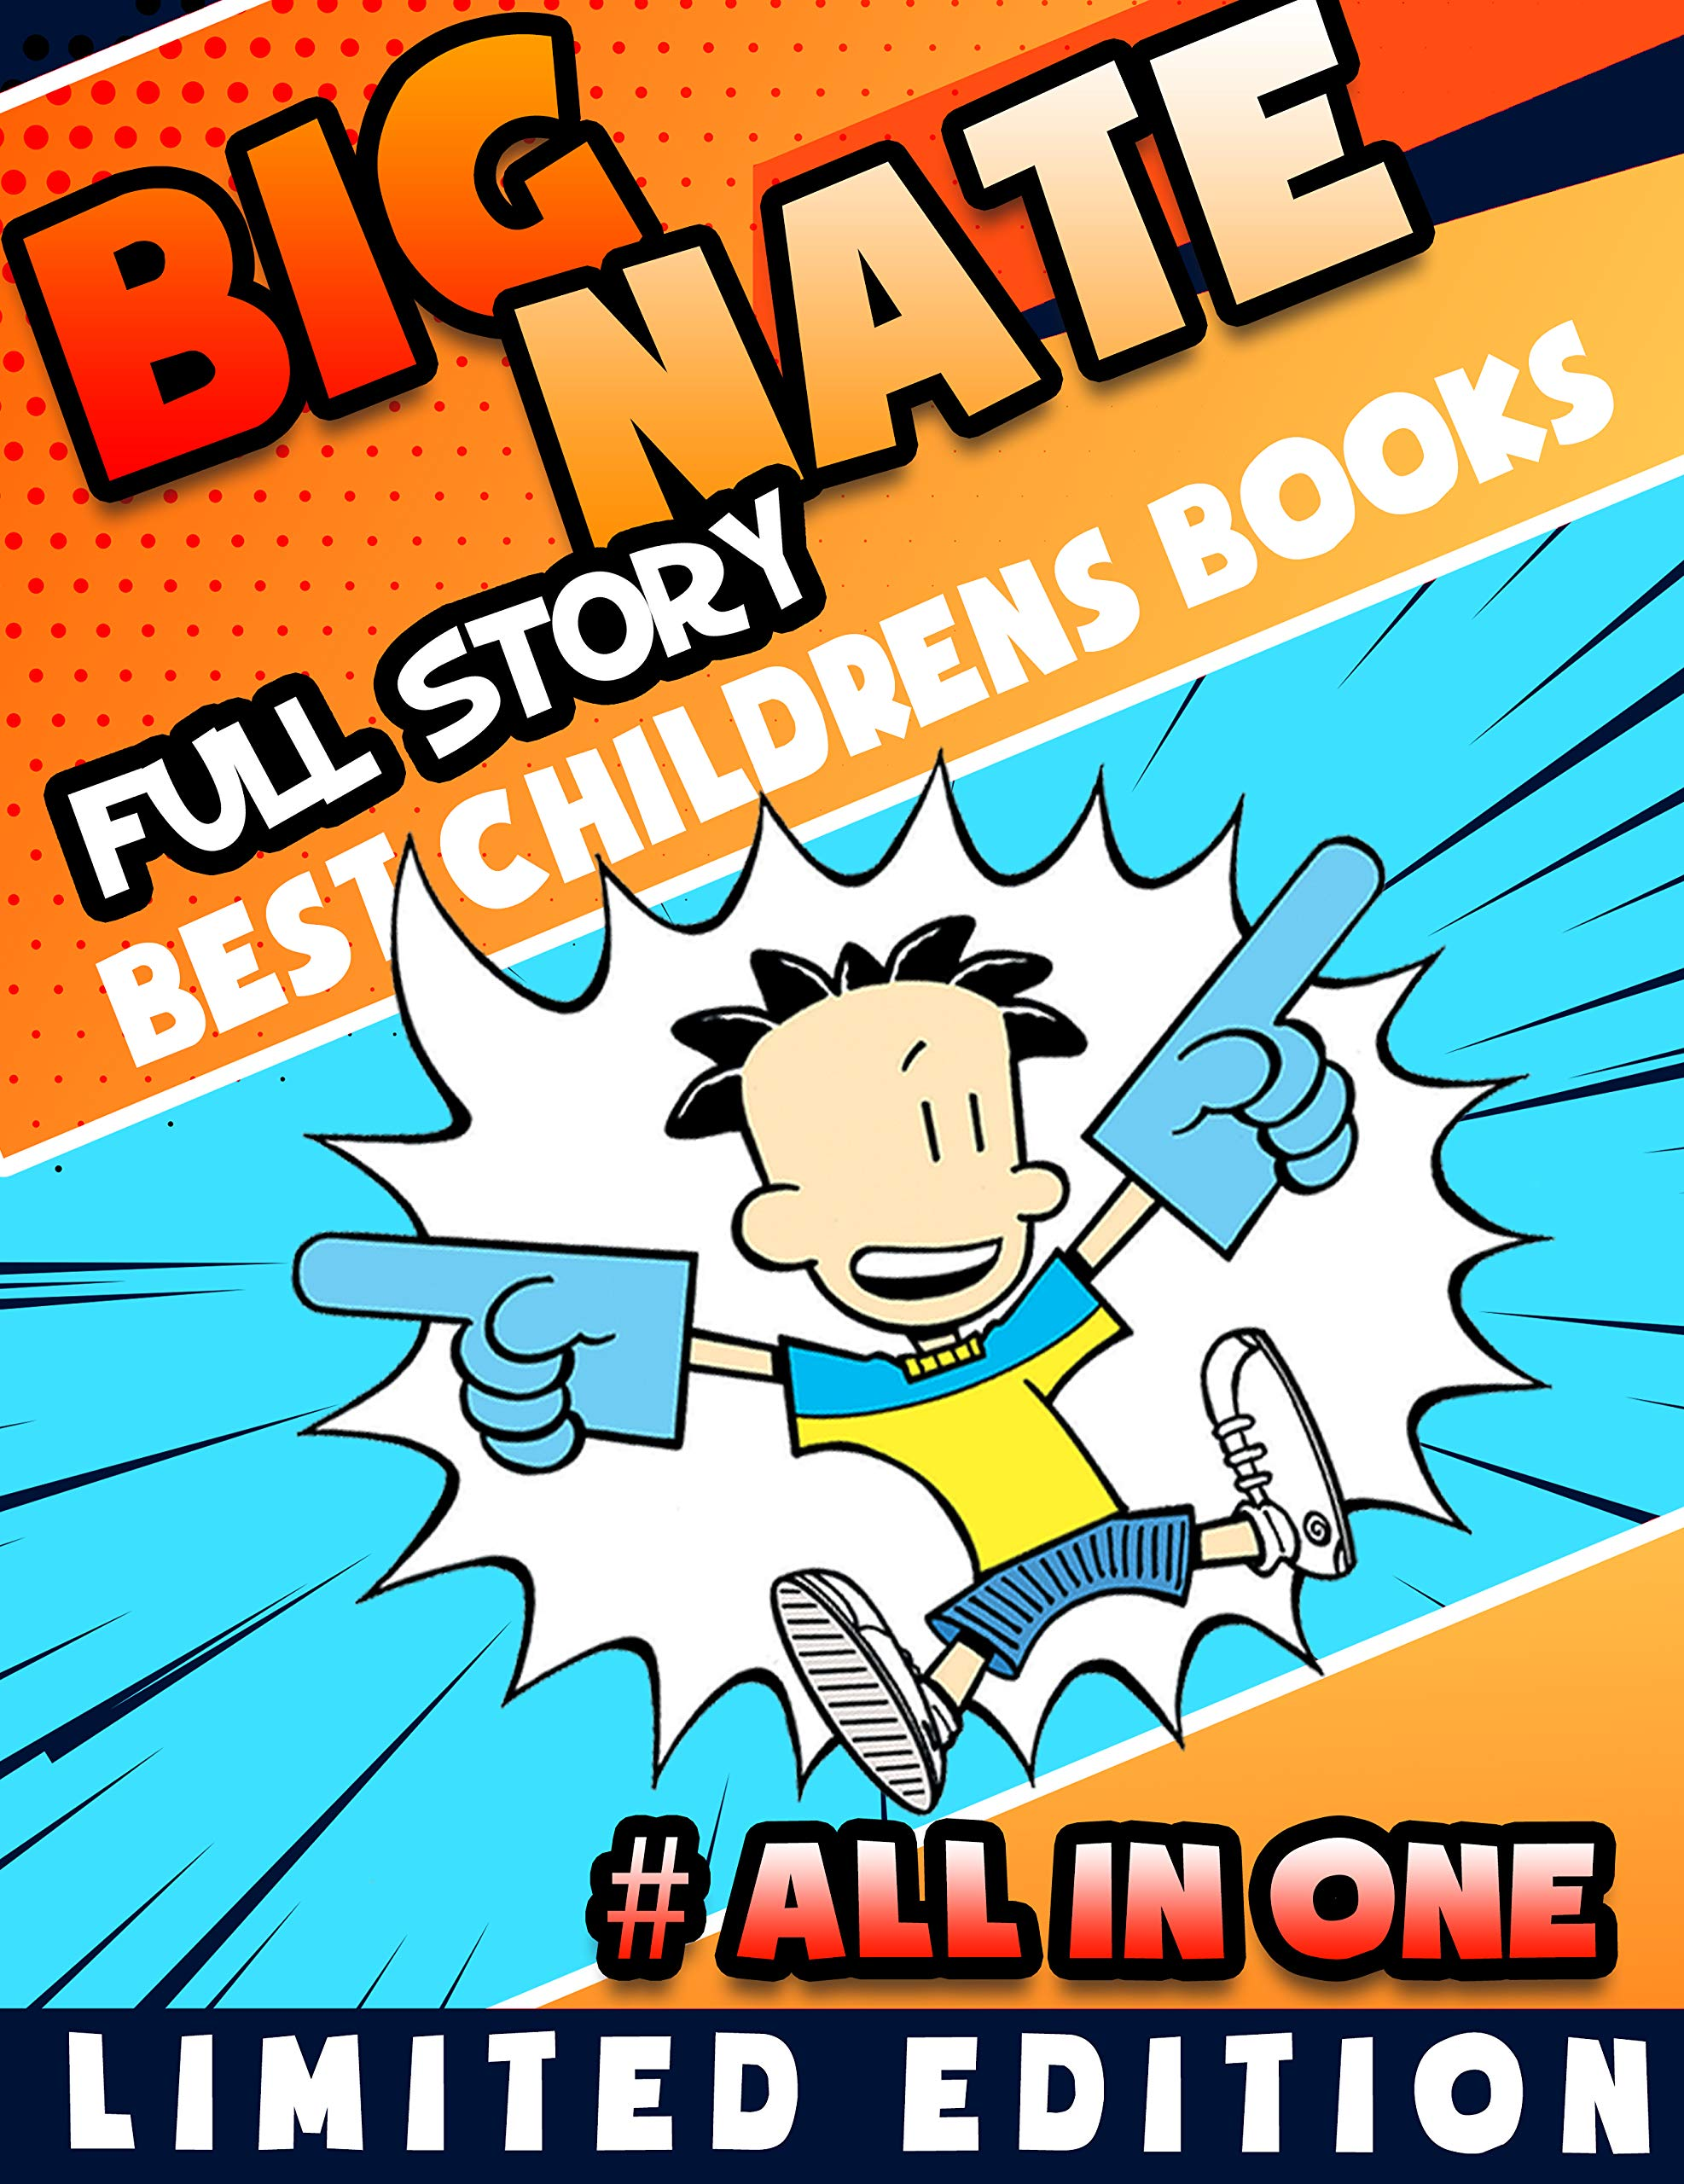 Full Story Best Childrens Books Big Nate Limited Edition Completed Series: Full Big Nate All in One Edition